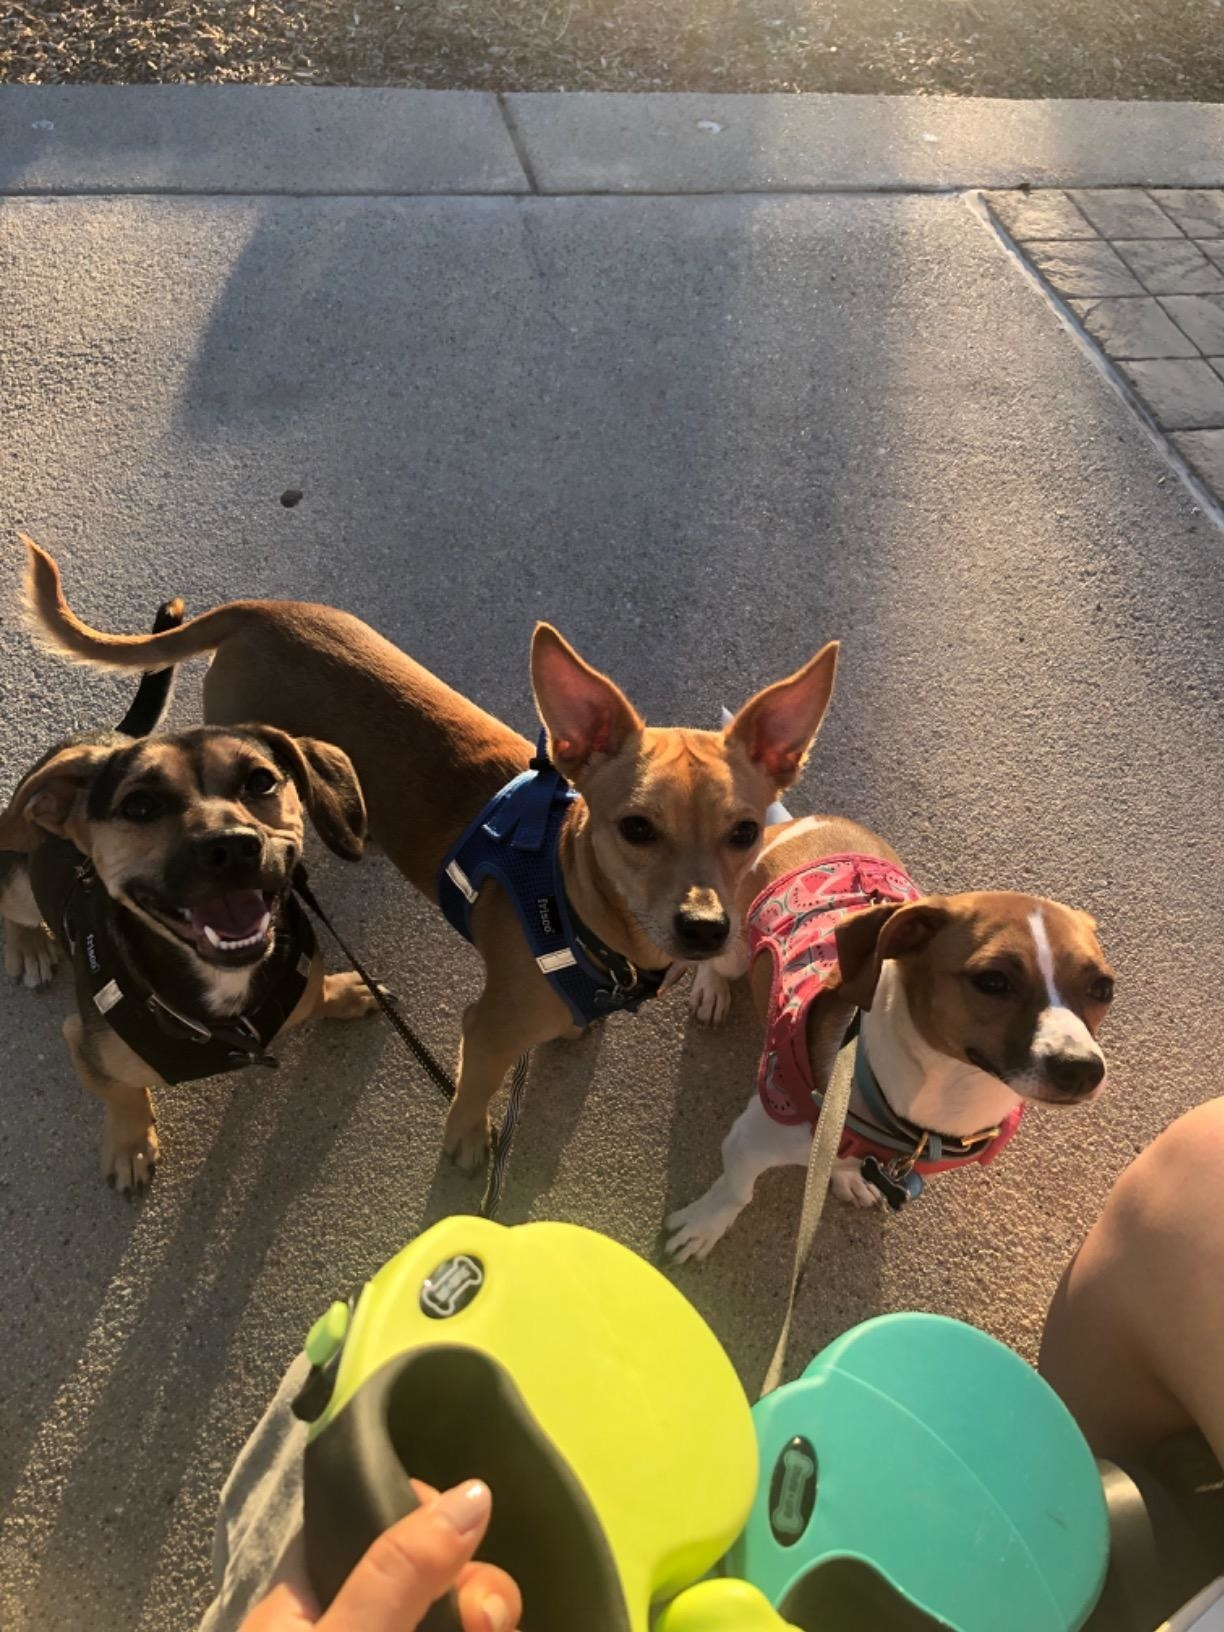 Reviewer's photo of three dogs on two of the leashes in the colors Green and Aqua